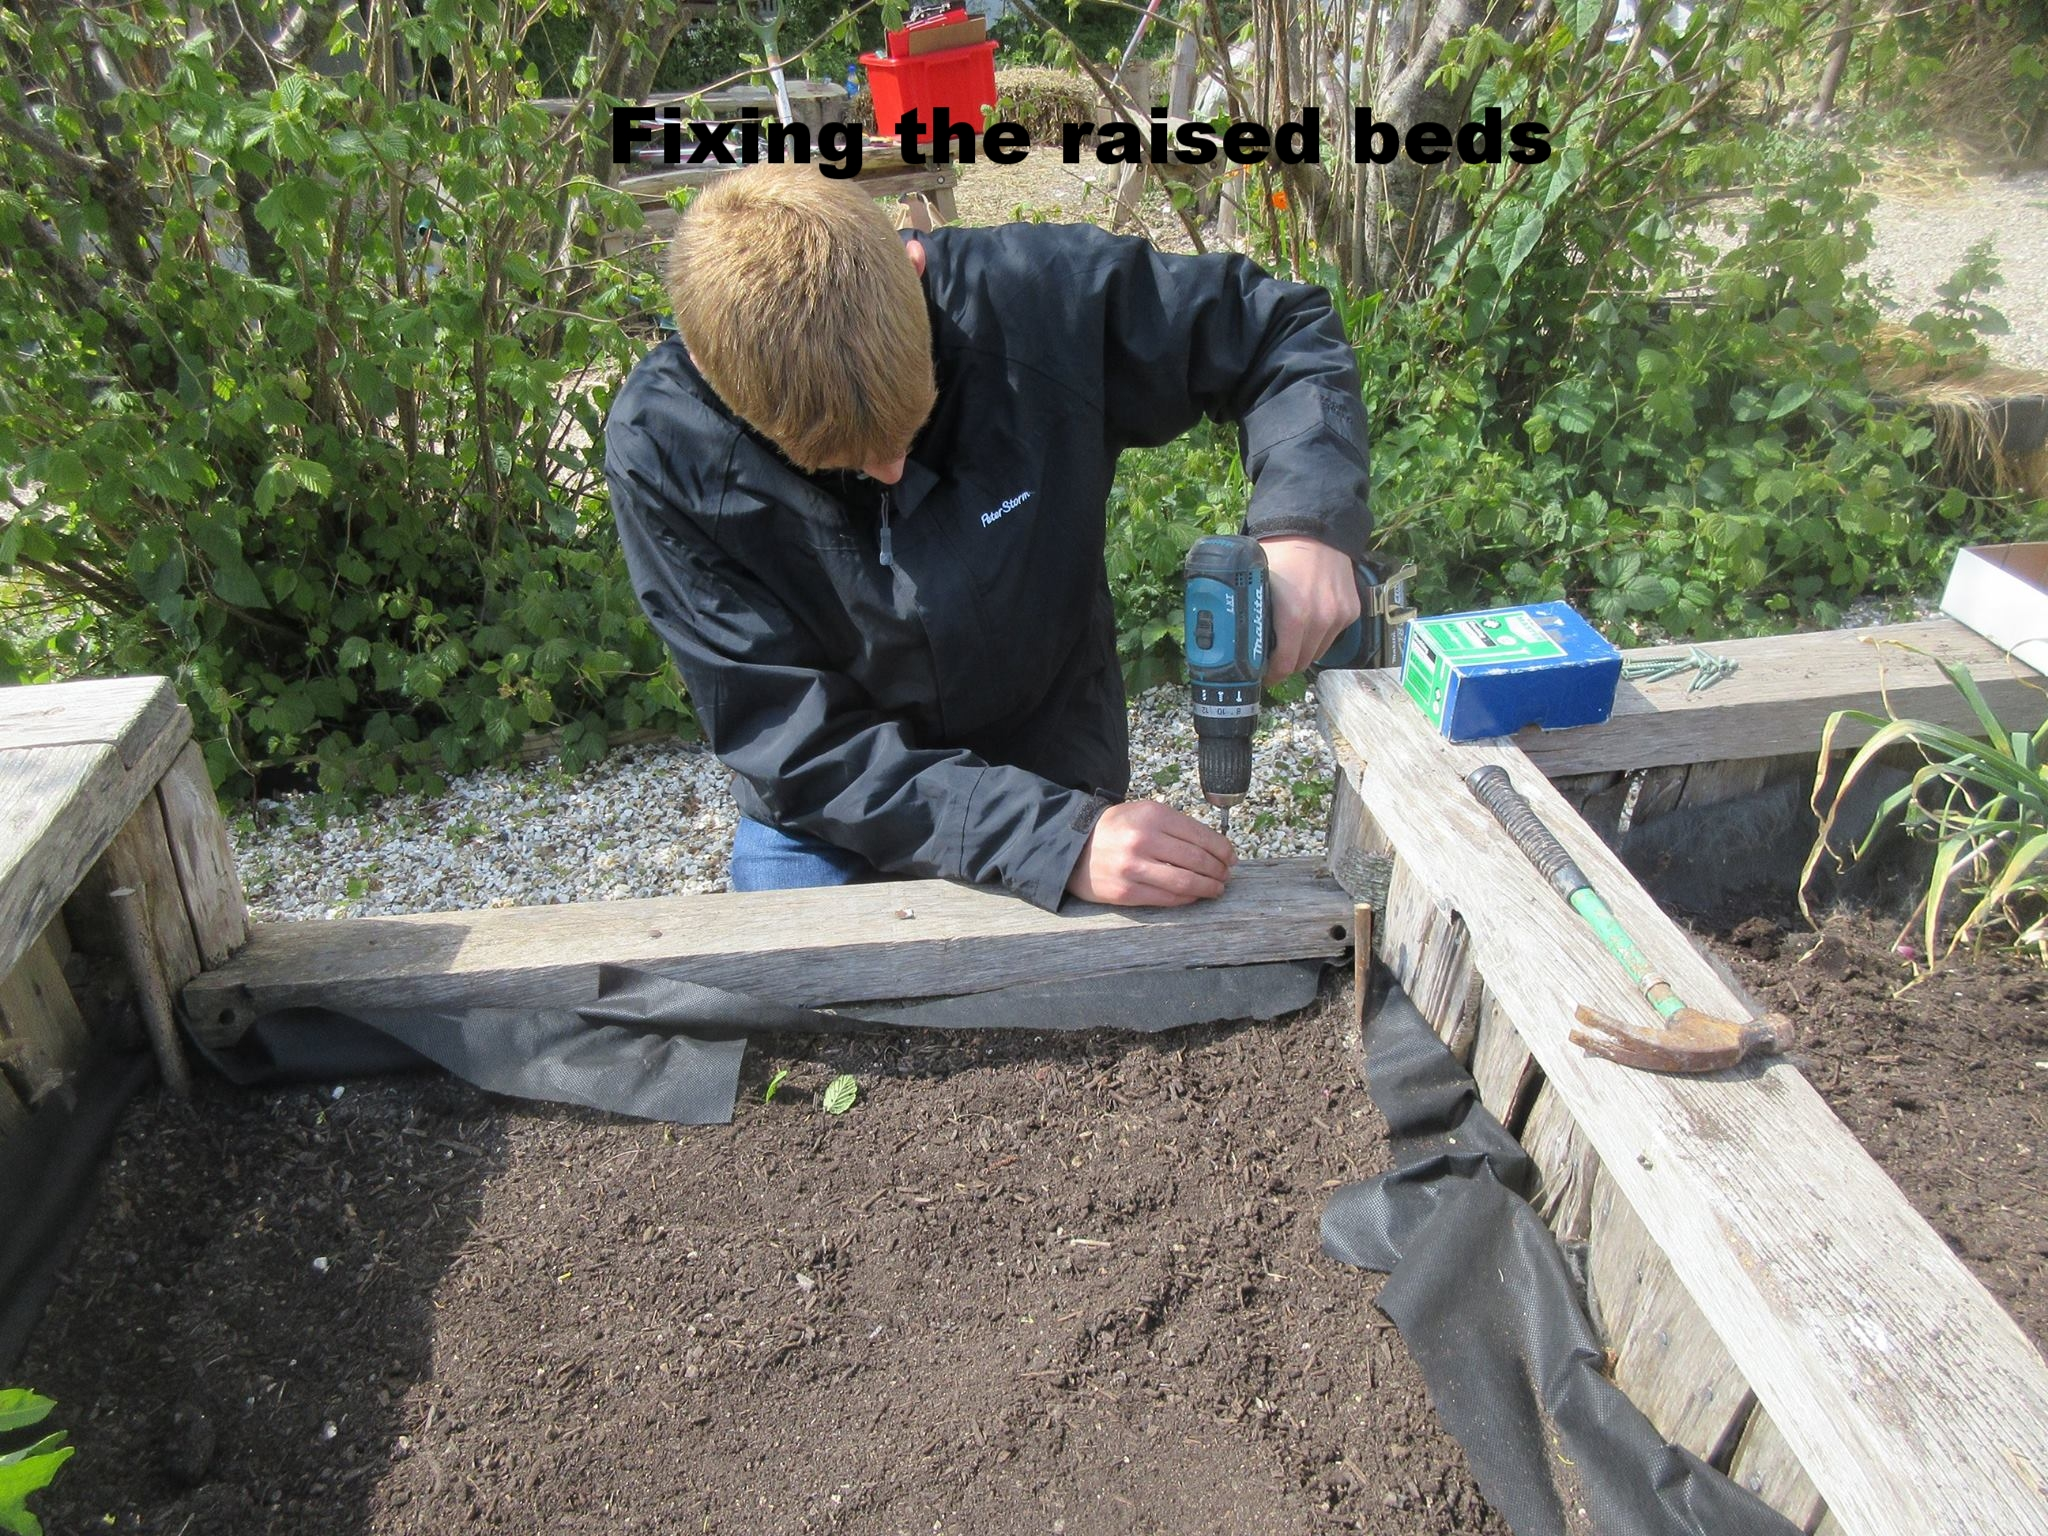 mending raised beds lca apr 2017.jpg